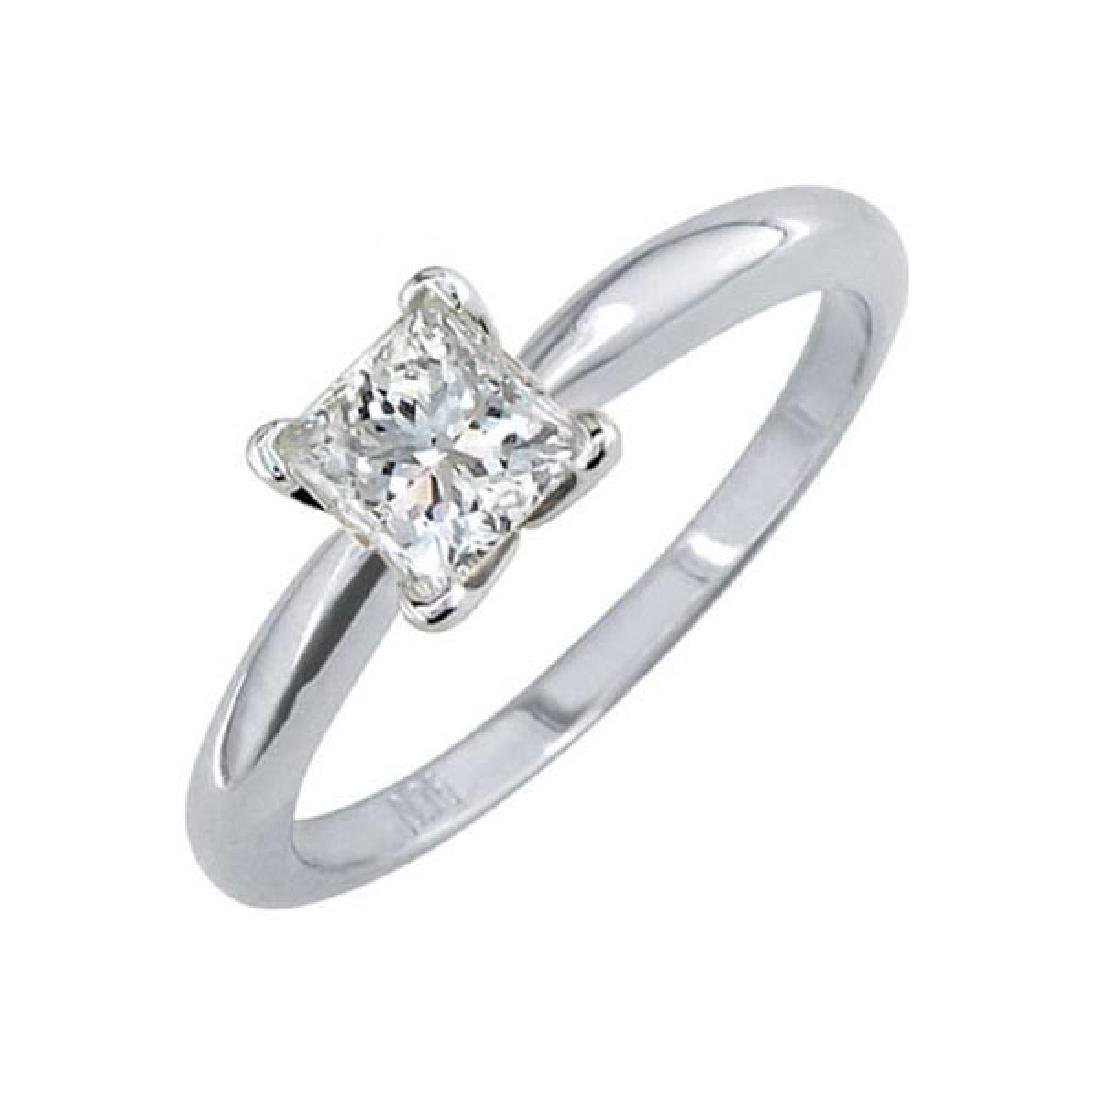 Certified 1.13 CTW Princess Diamond Solitaire 14k Ring